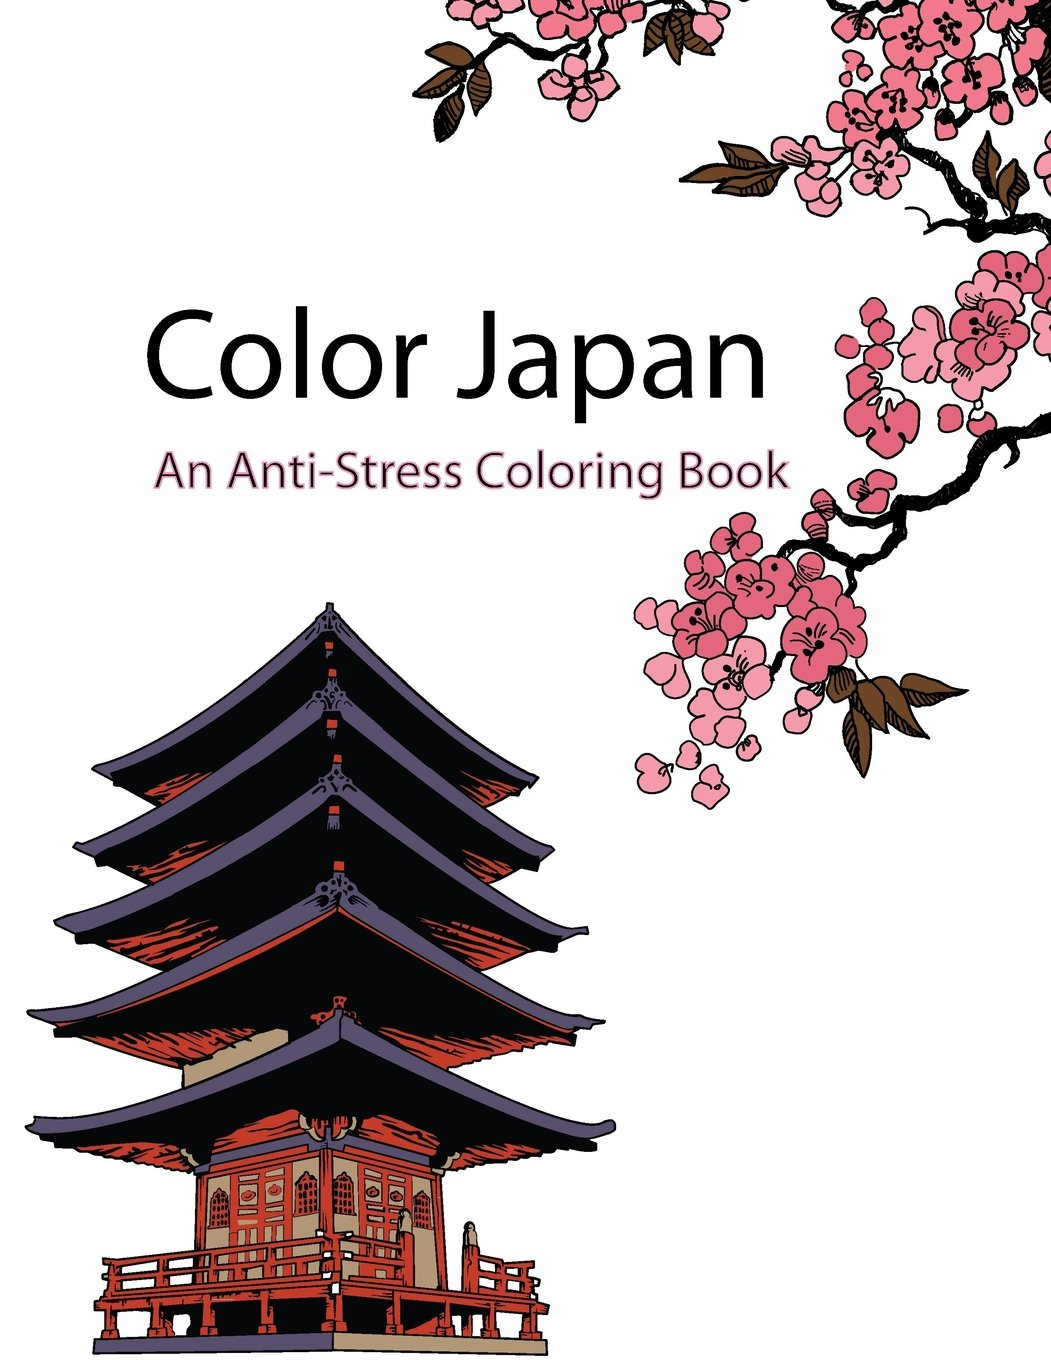 Color Japan Therapy An Anti Stress Coloring Book Star Books De Artist 9781518646577 Amazon